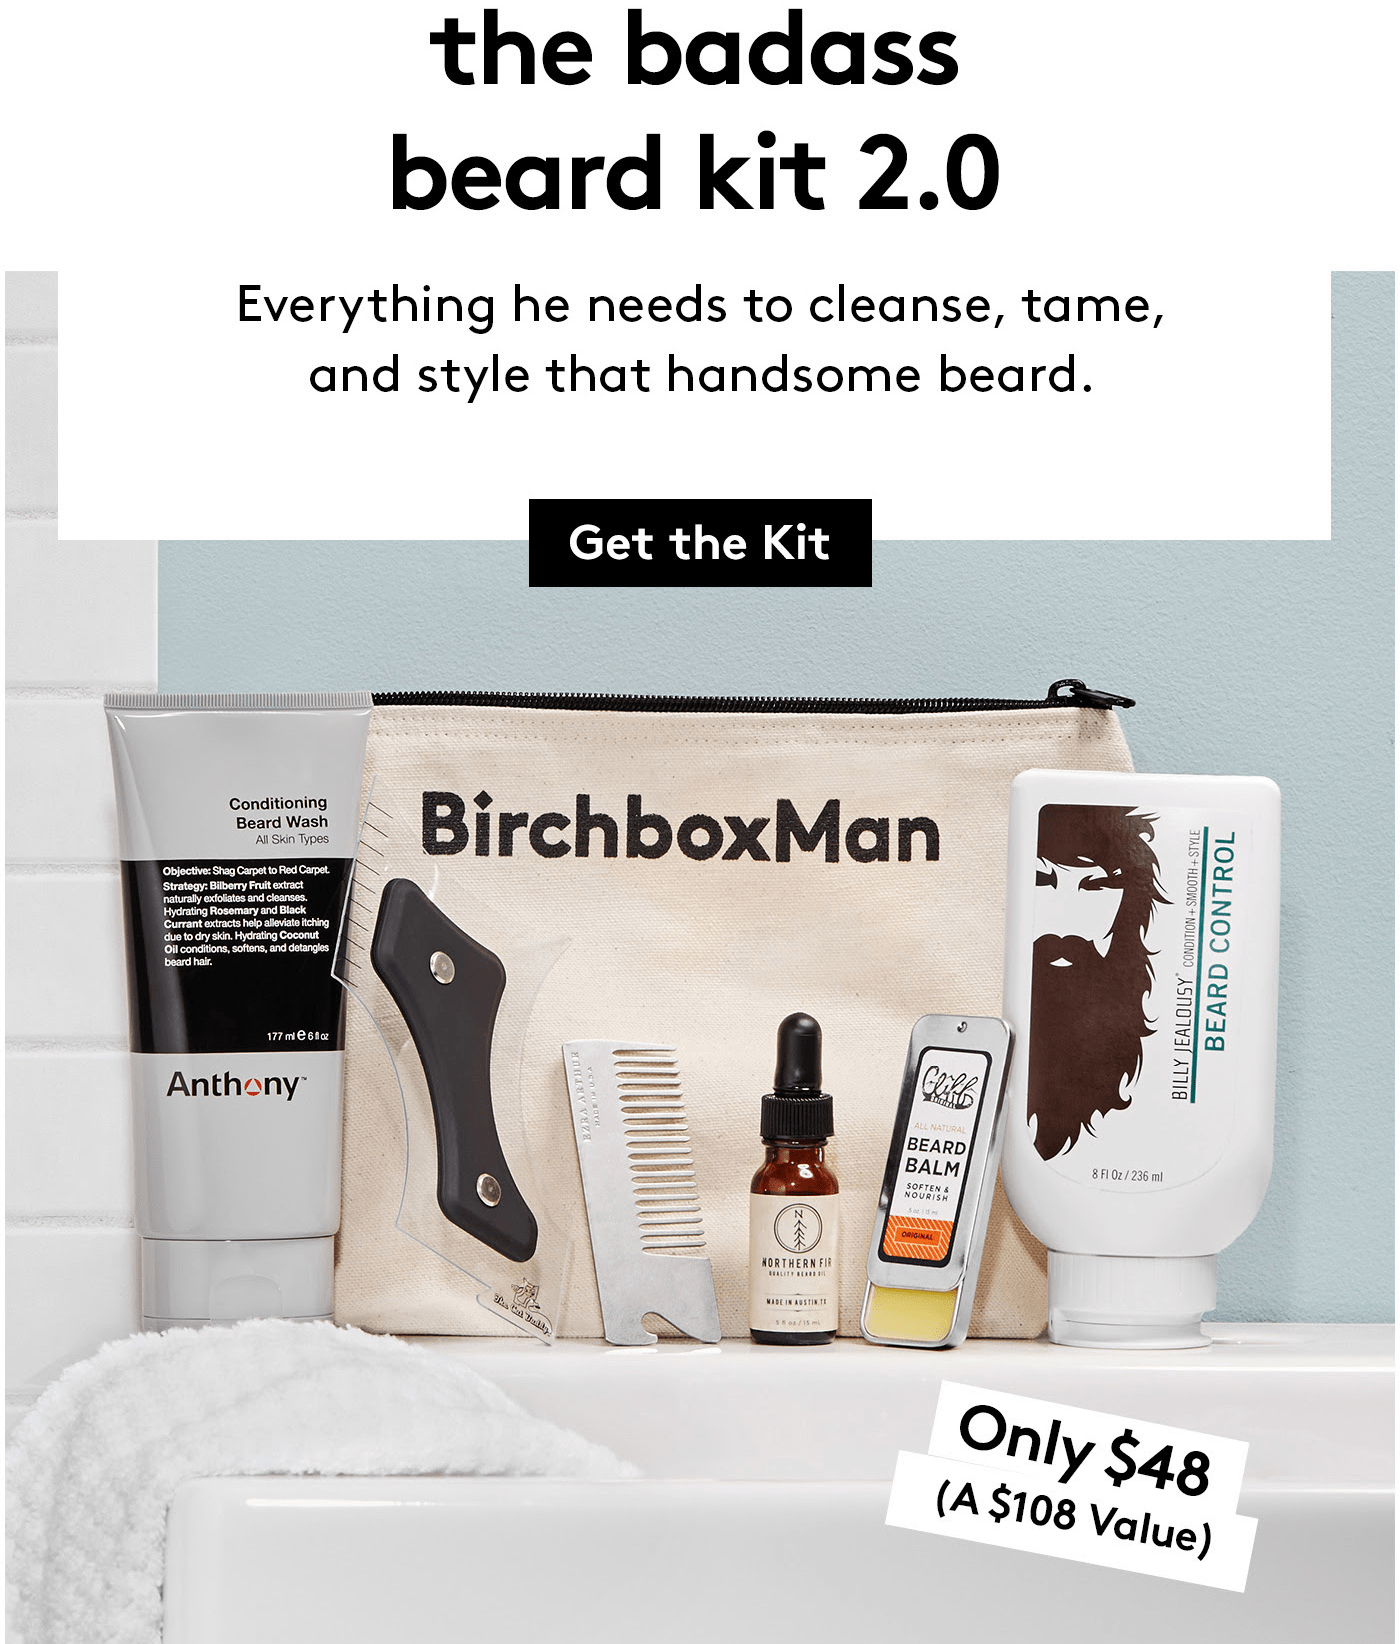 New Birchbox Man Limited Edition Box: The Badass Beard Kit 2.0 + Coupons!